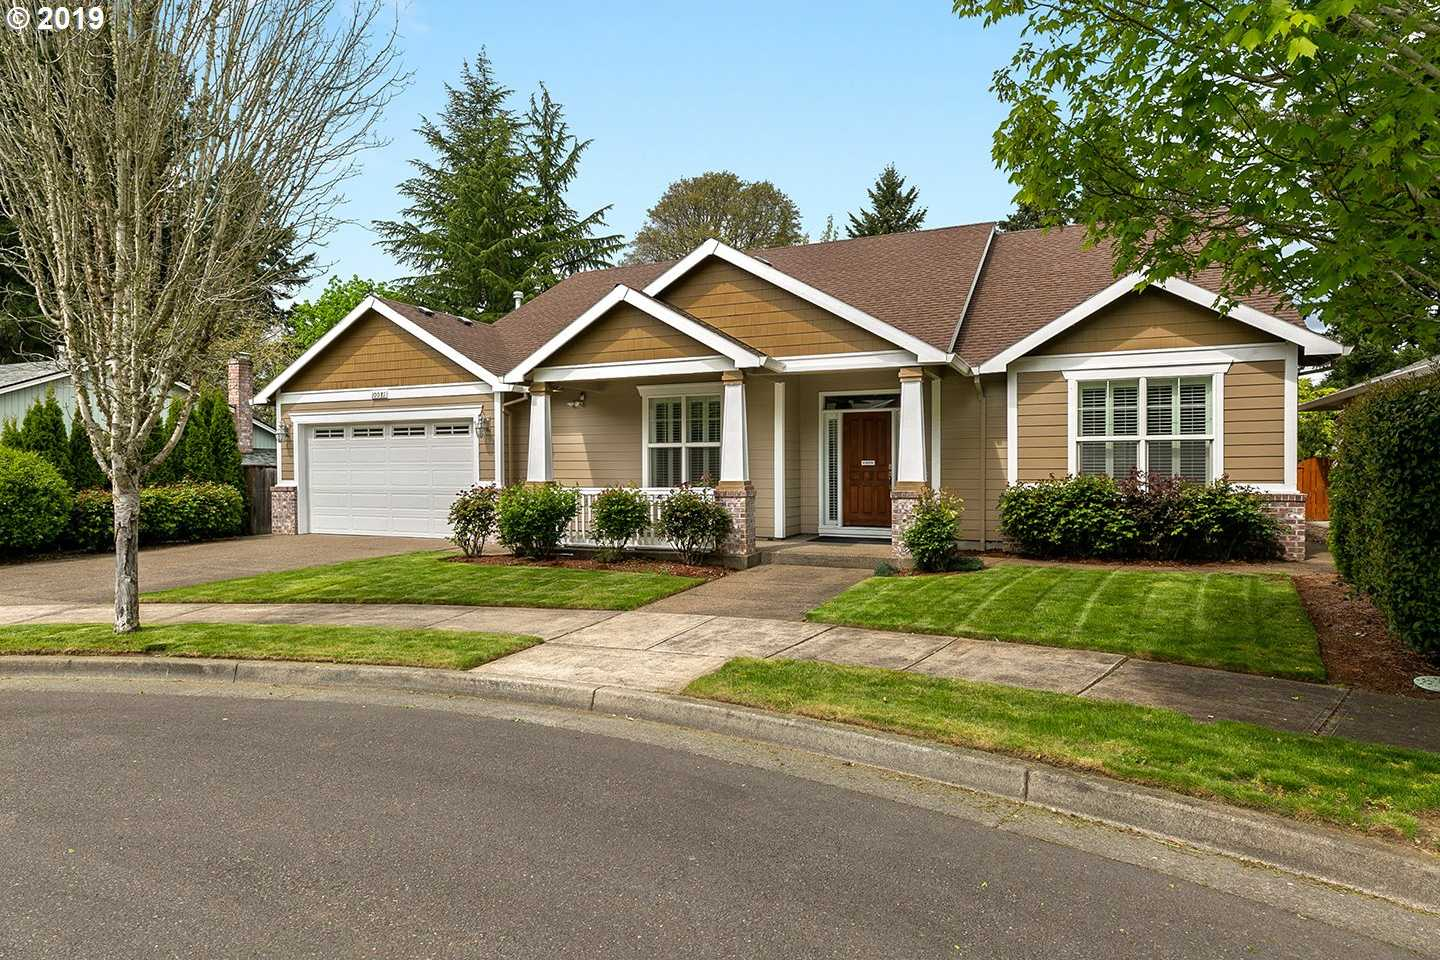 $548,000 - 4Br/2Ba -  for Sale in Tualatin